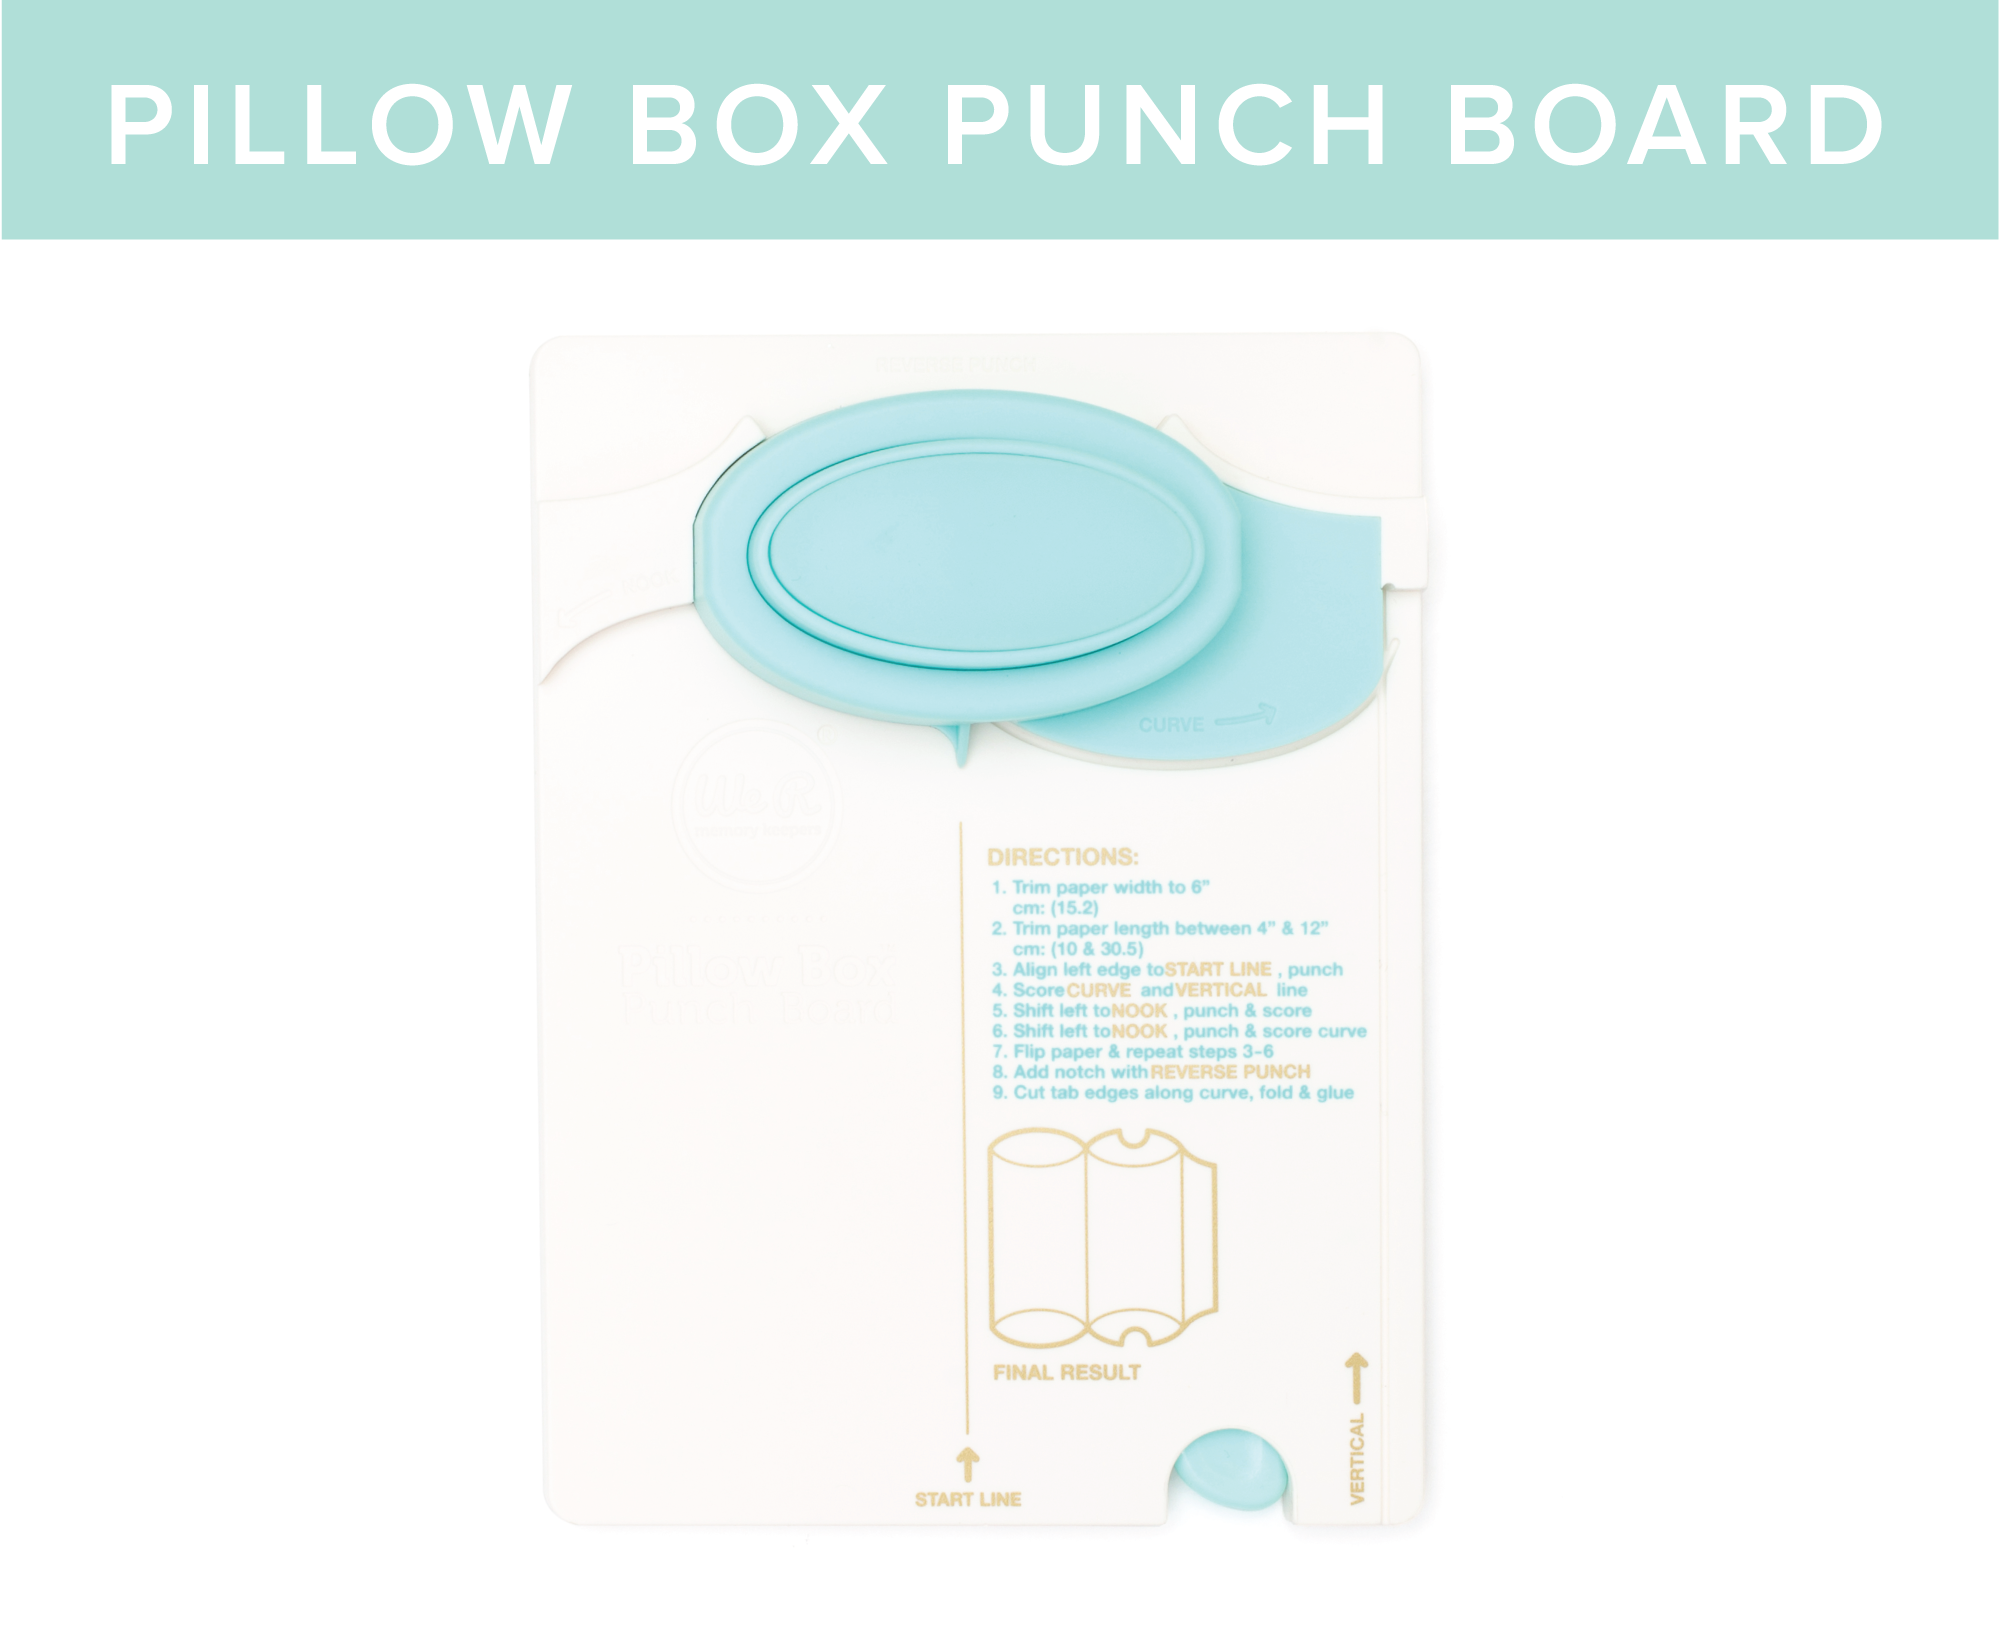 WR_PunchBoards_Instructions_Links_PillowBoxPB